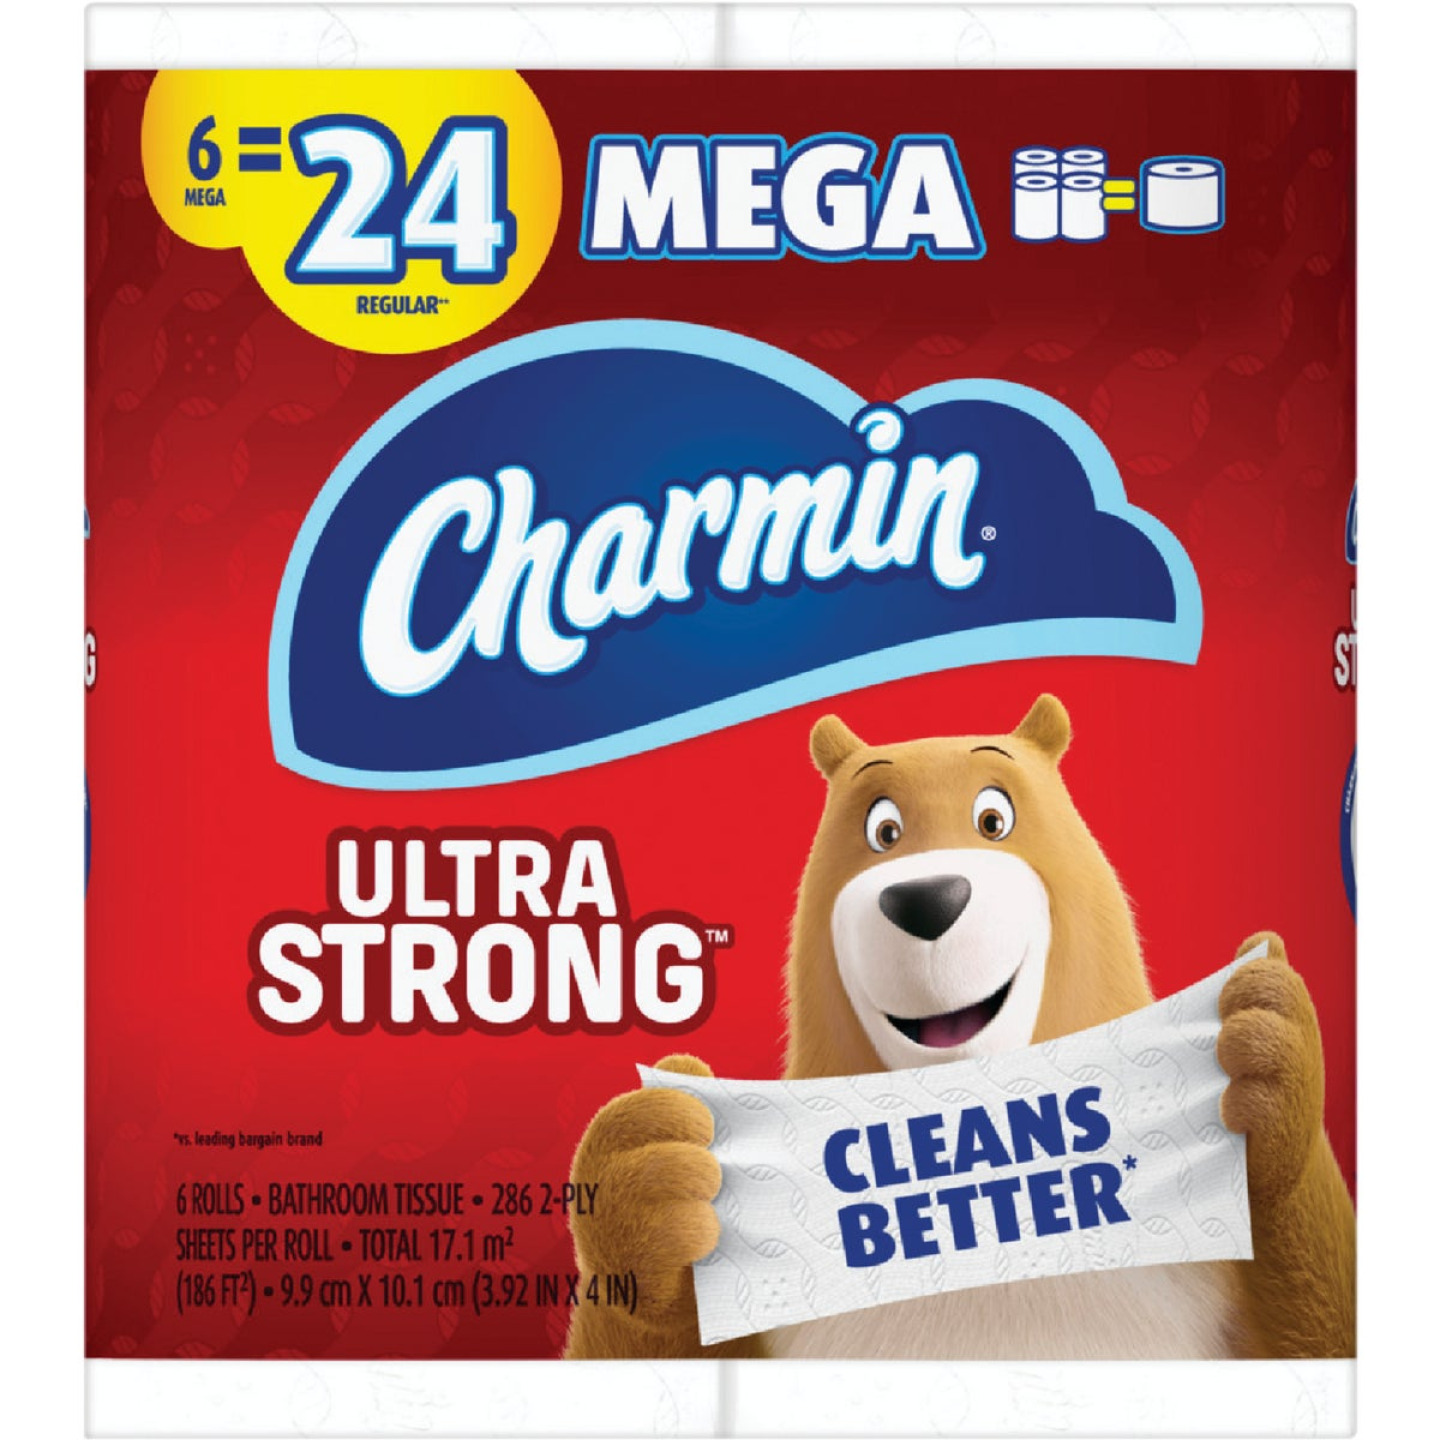 Charmin Ultra Strong Toilet Paper (6 Mega Rolls) Image 1